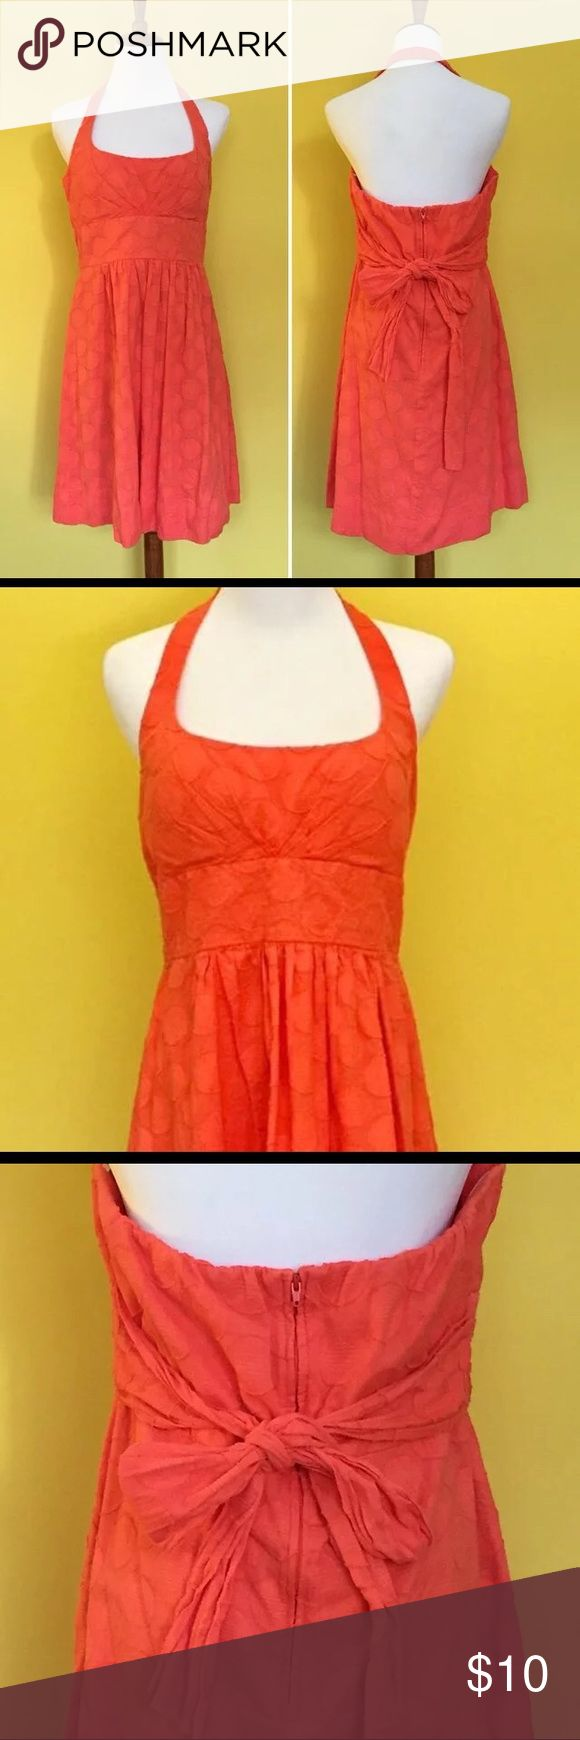 Orange Halter Dress Size 16 With Circle Pattern B. Smart brand dress features a circle pattern with high waistband, back zipper and tie back. This is a size 16 halter top lined dress.  Offers welcome and bundles receive a discount. Smoke and pet free. Gently used clothing is like new in excellent used condition with no flaws or damage. All items shipped within 24 hours of purchase. B. Smart Dresses Midi